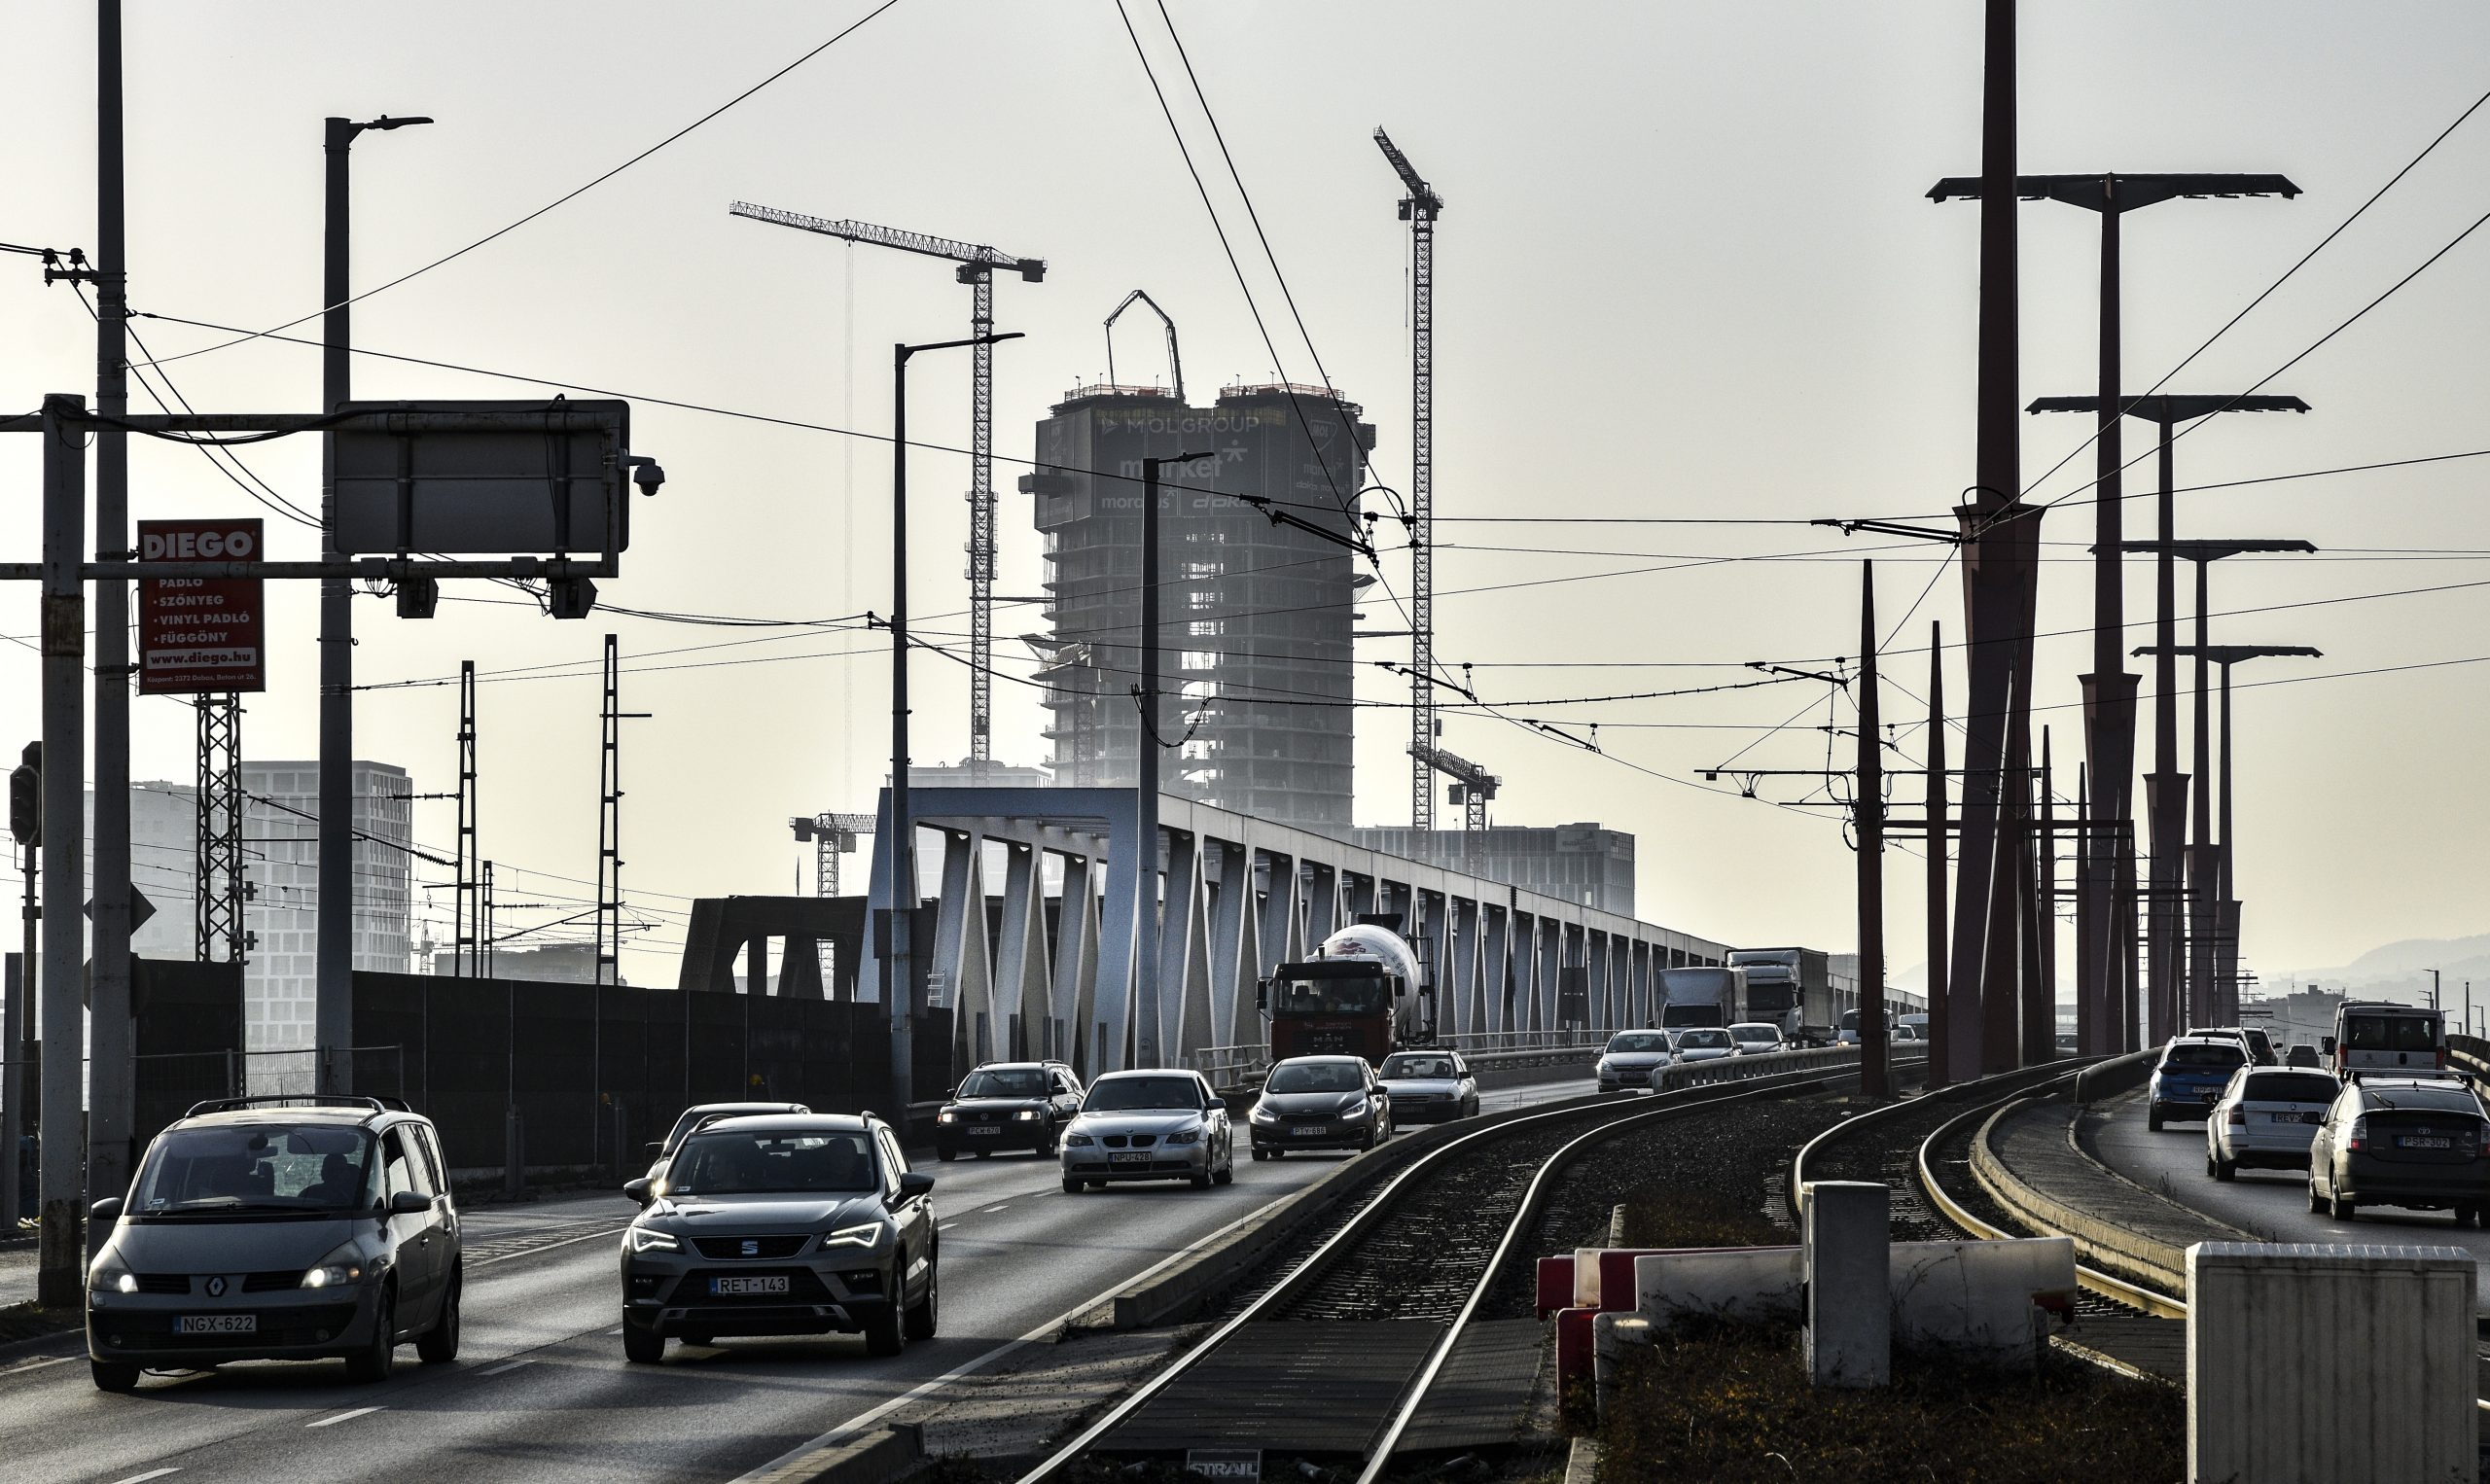 Budapest's New South Circle Railway Highly Overpriced, Experts Say